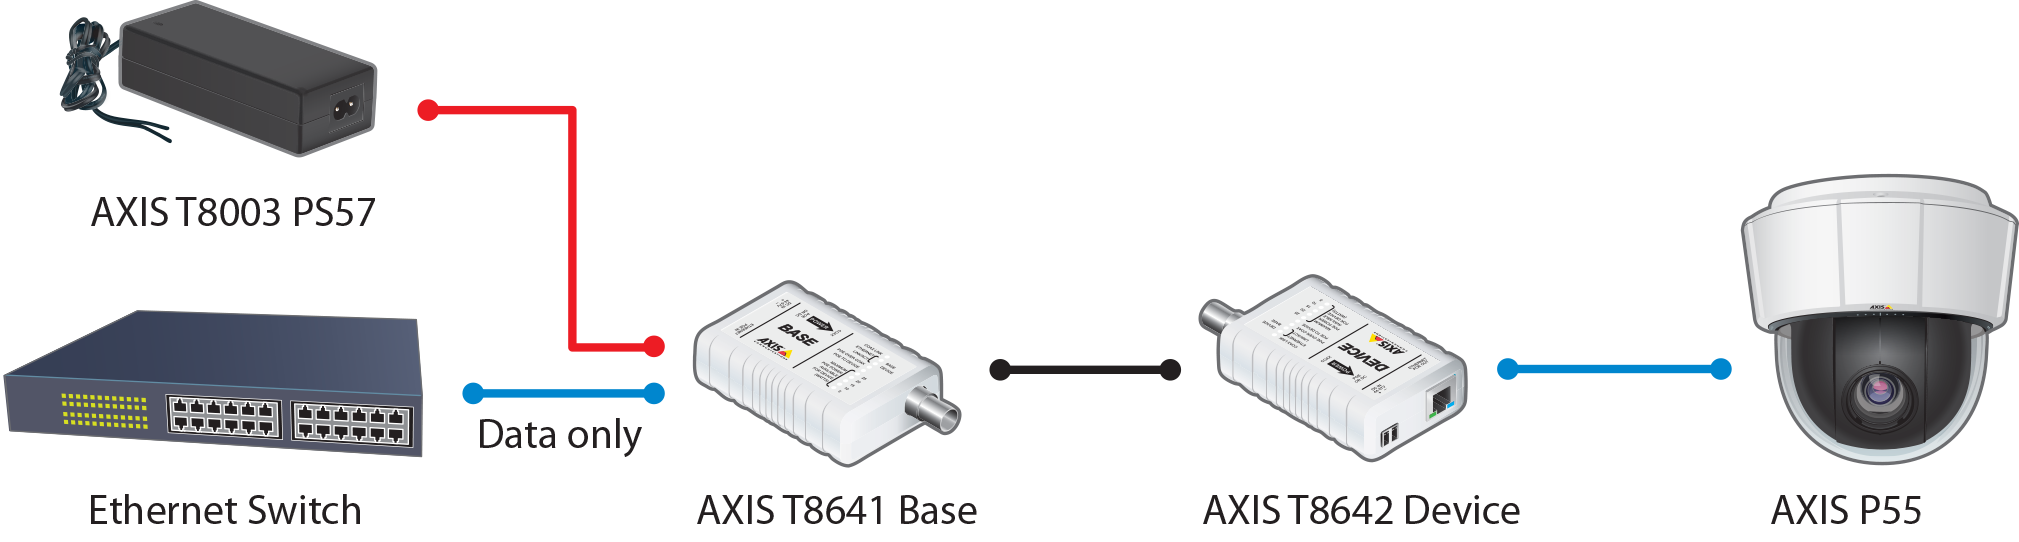 4_t8641_T8642_56V_Power_Supply_0.png